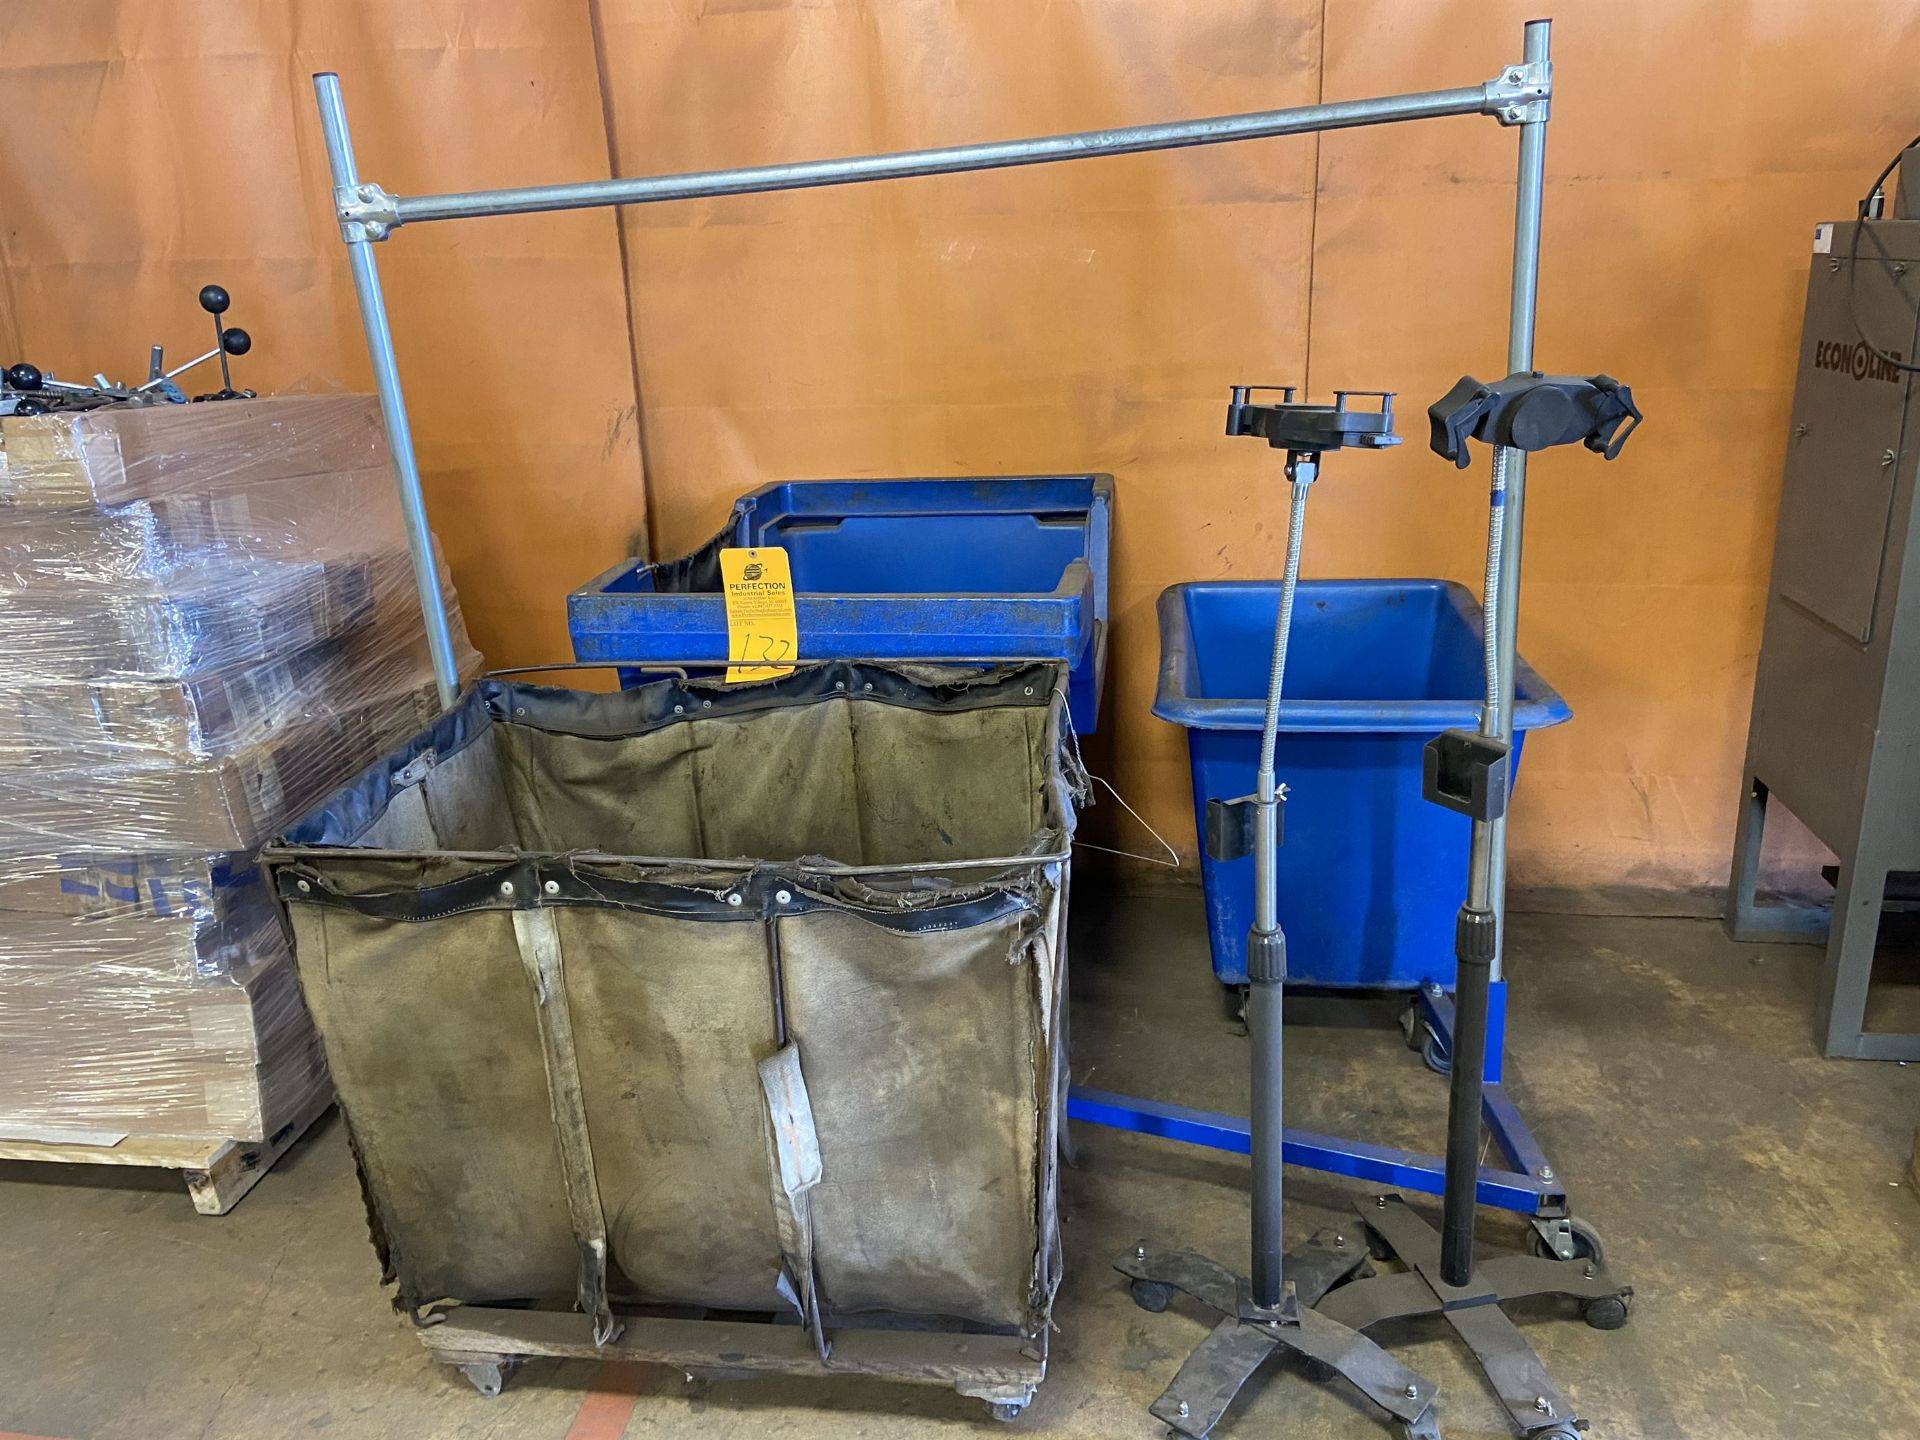 Lot of Laundry Baskets and Hanging Rack